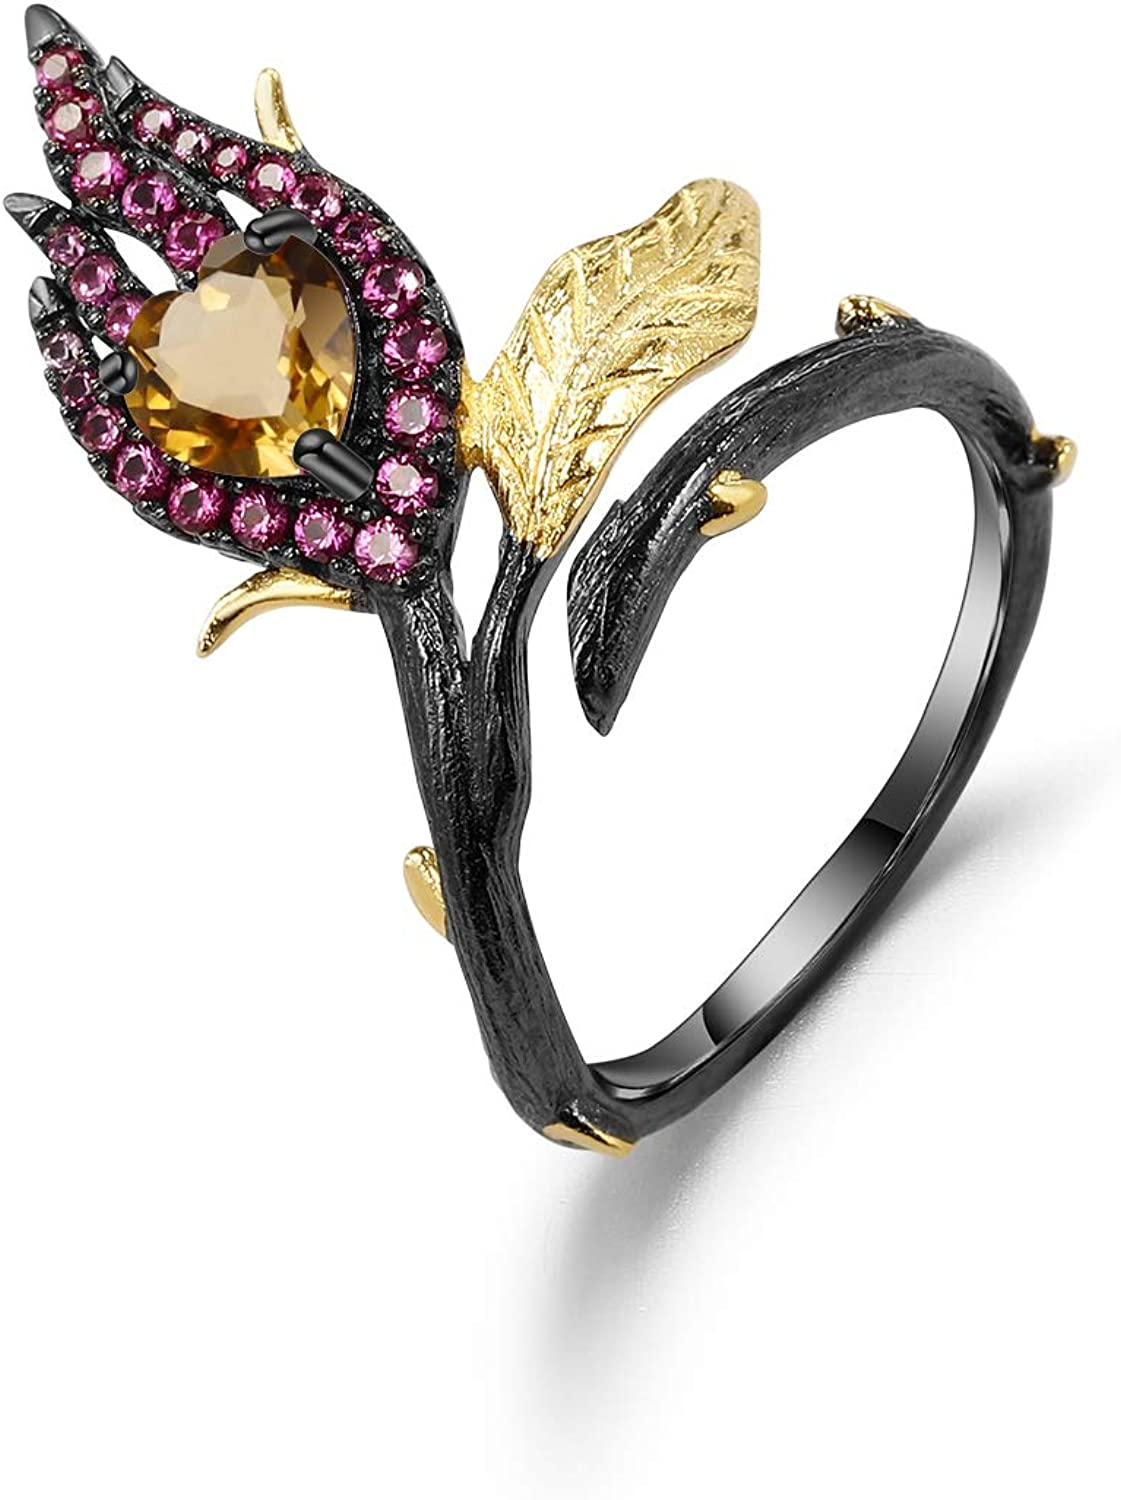 Over item handling Qitian Max 77% OFF 925 Silver Two Tone Adjust Burning Heart Handmade Woman's